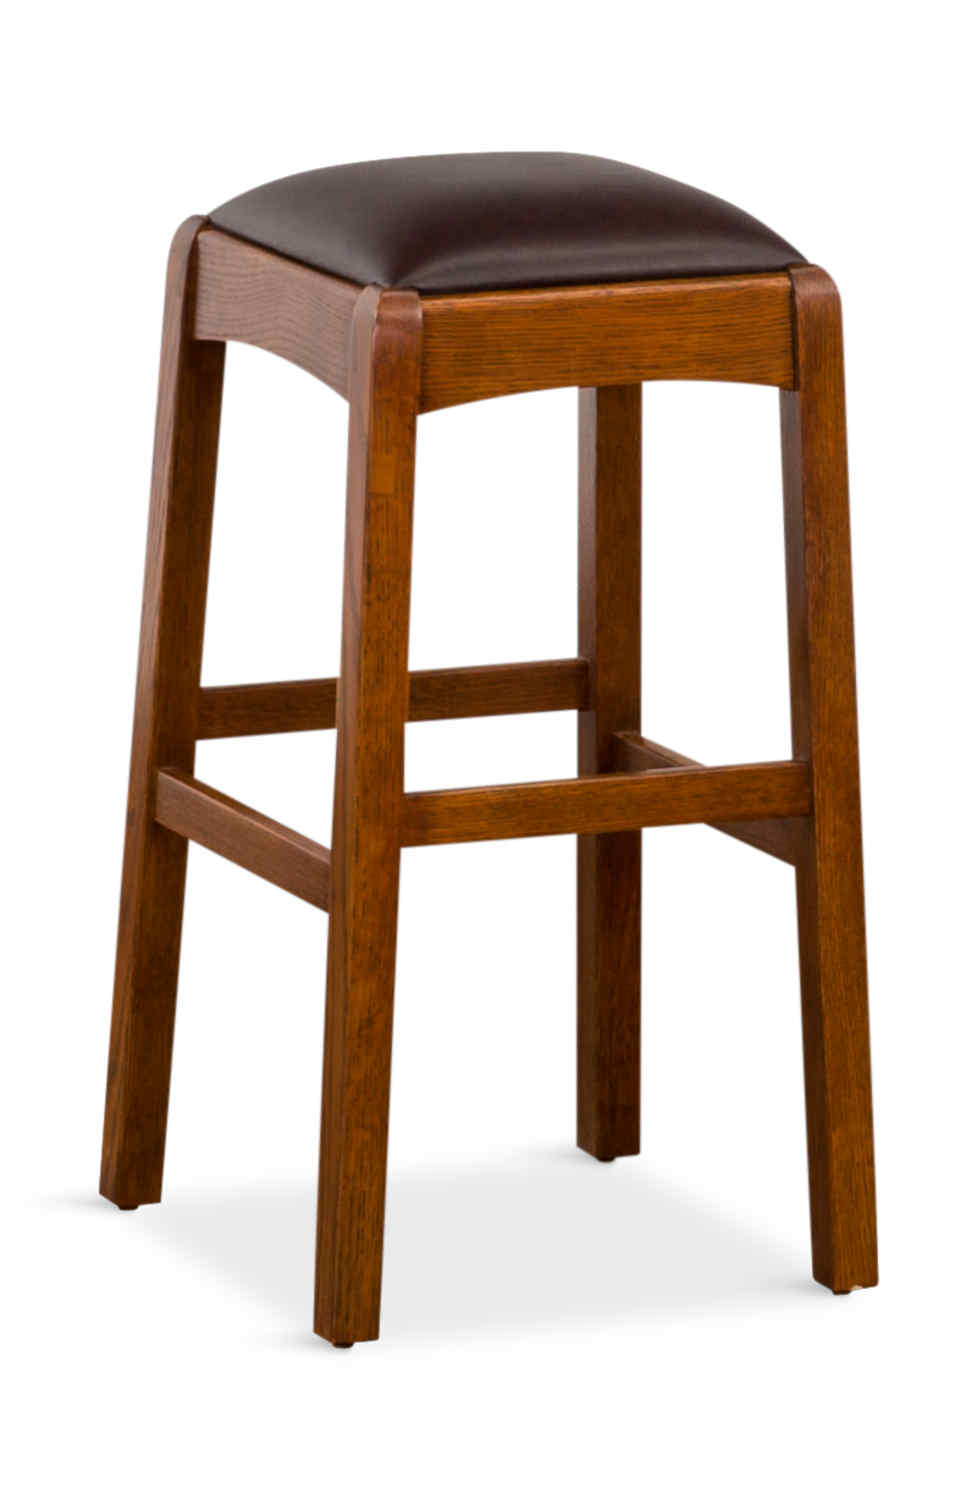 Enjoyable Bar Height Stool Machost Co Dining Chair Design Ideas Machostcouk